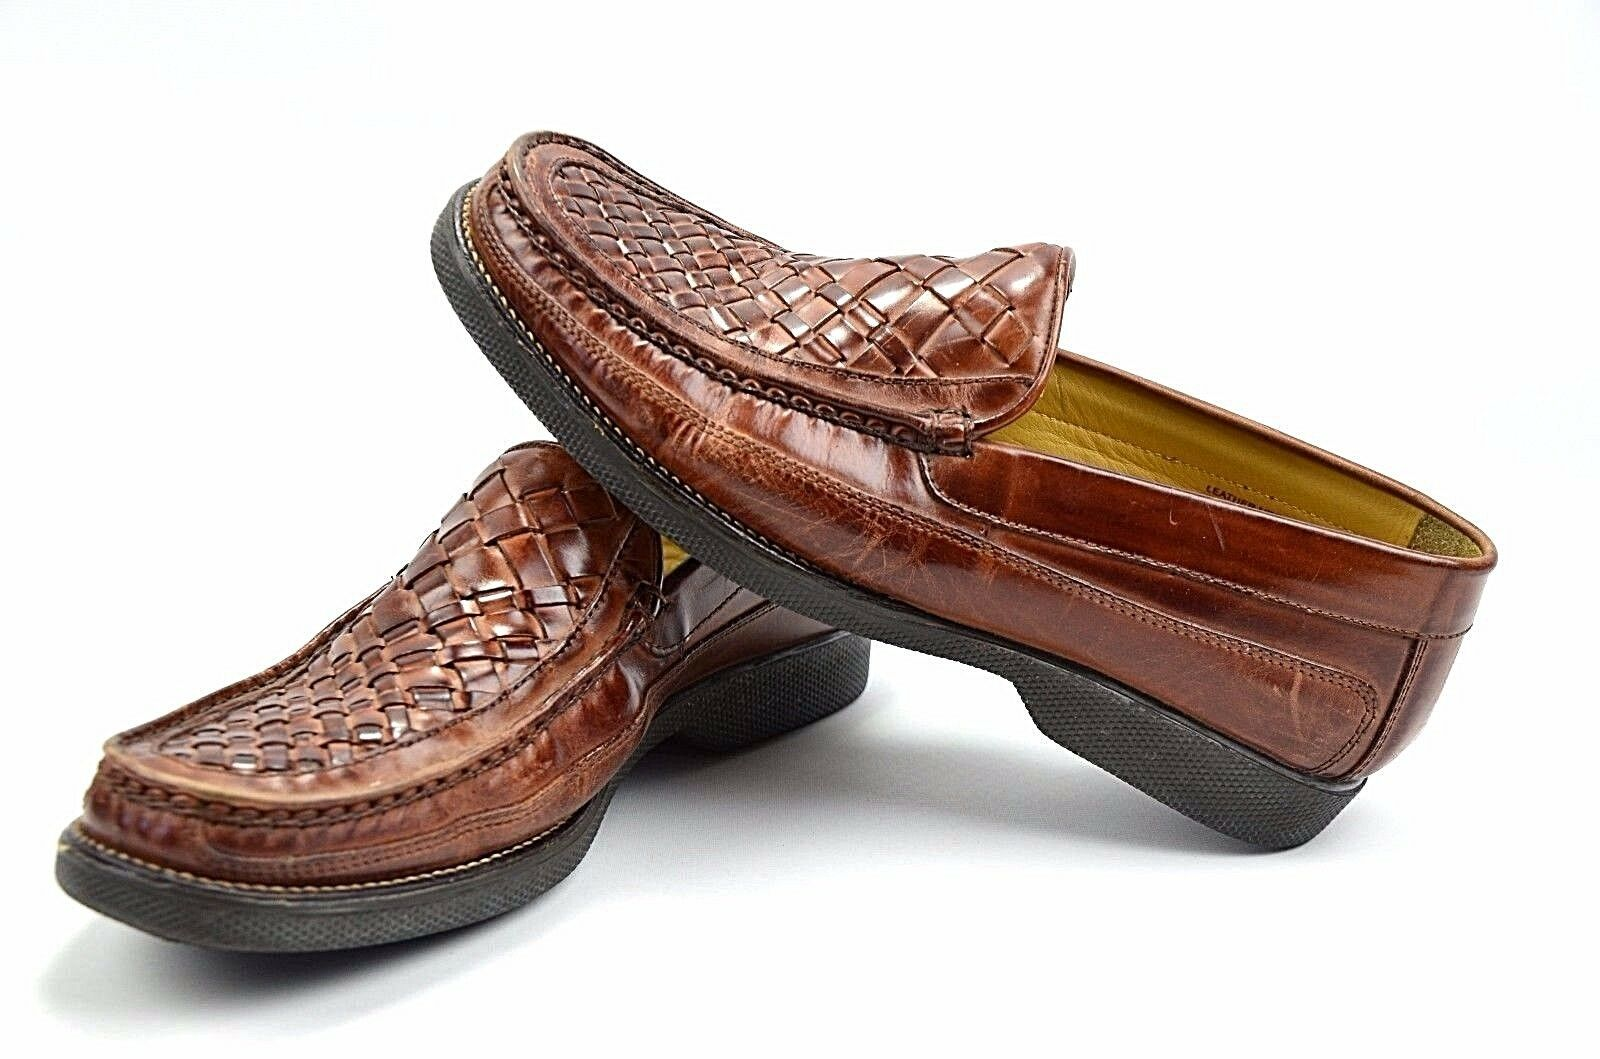 Florsheim Marshall Brown Woven Leather Moc Toe Loafers shoes Men's 9.5 D 18126